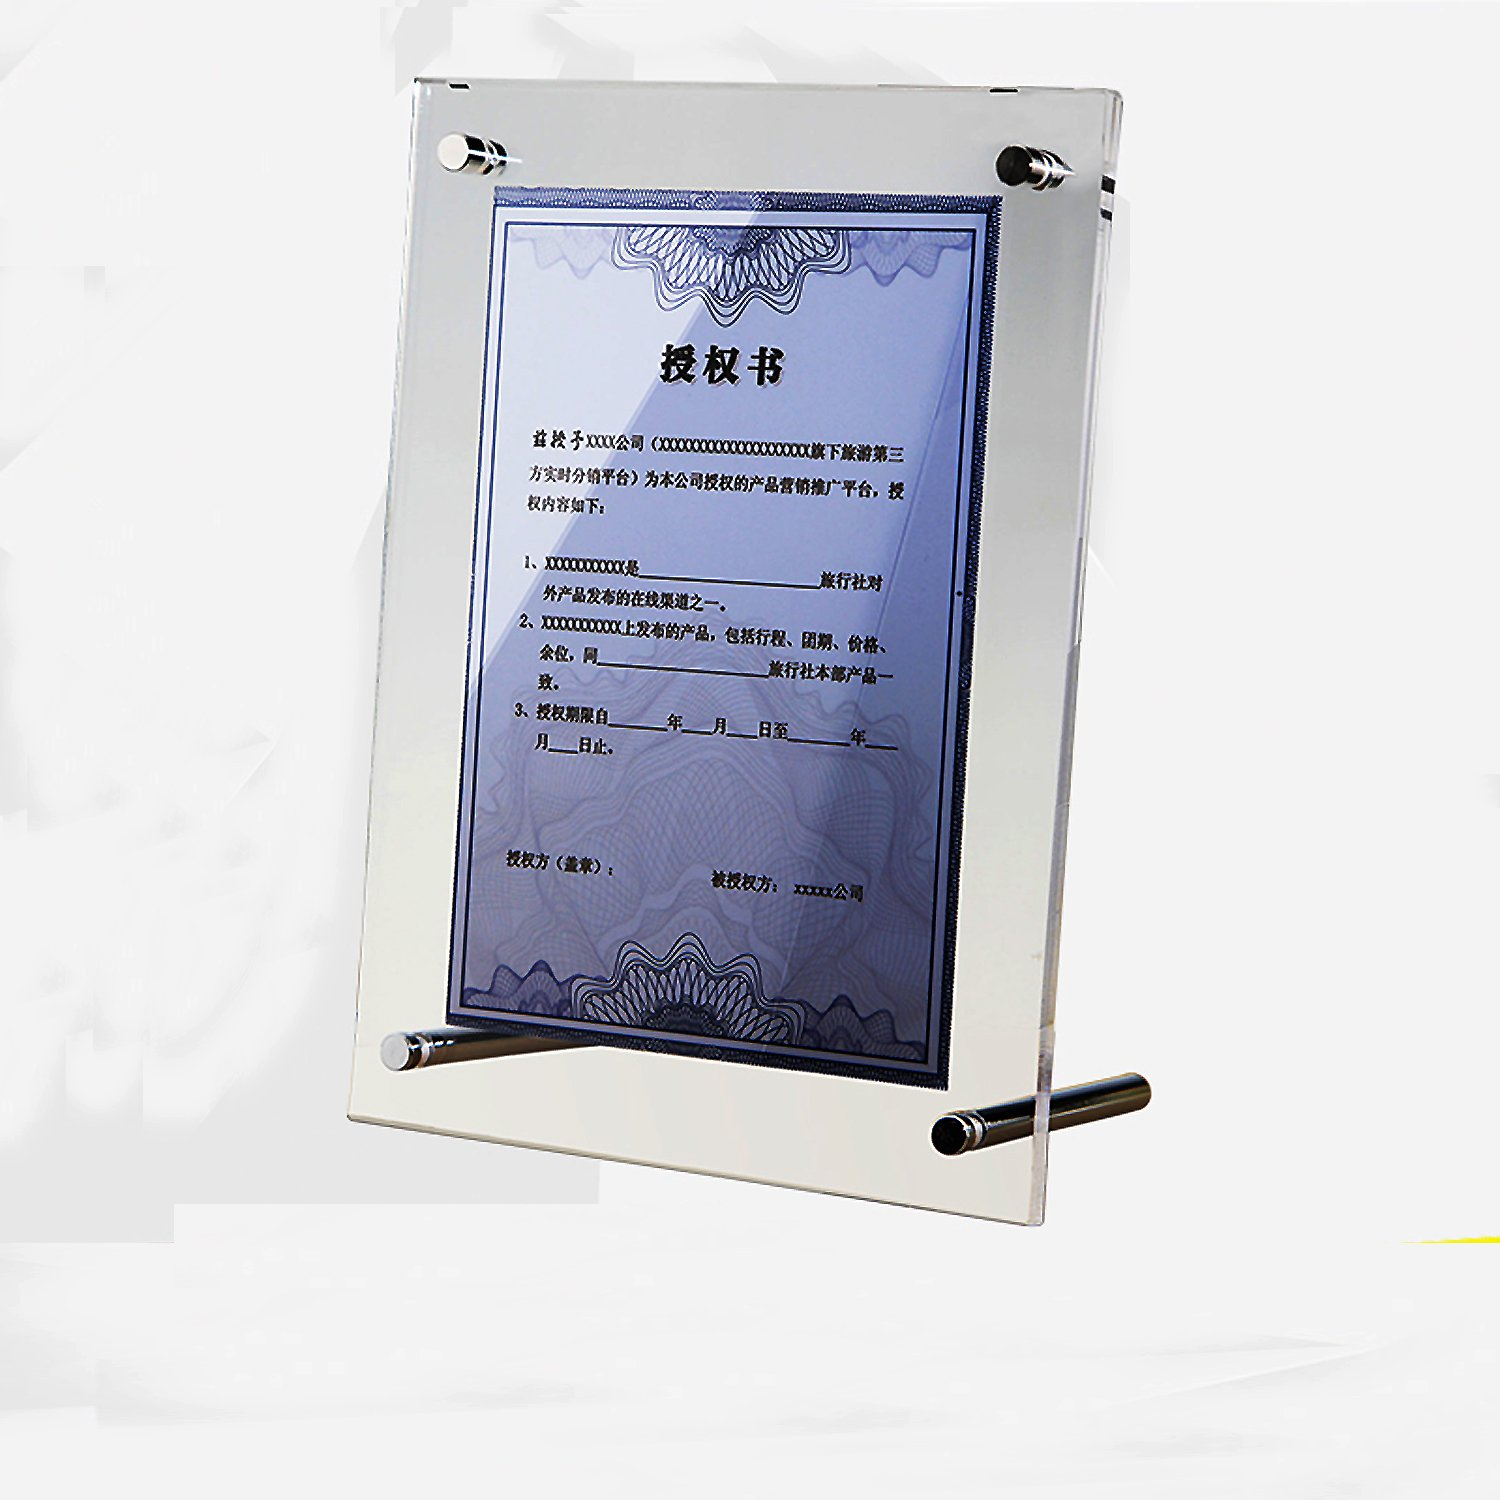 Yakri Plexiglass Picture Frames,Clear Acrylic Poster & Sign Displays with Standoff -A5